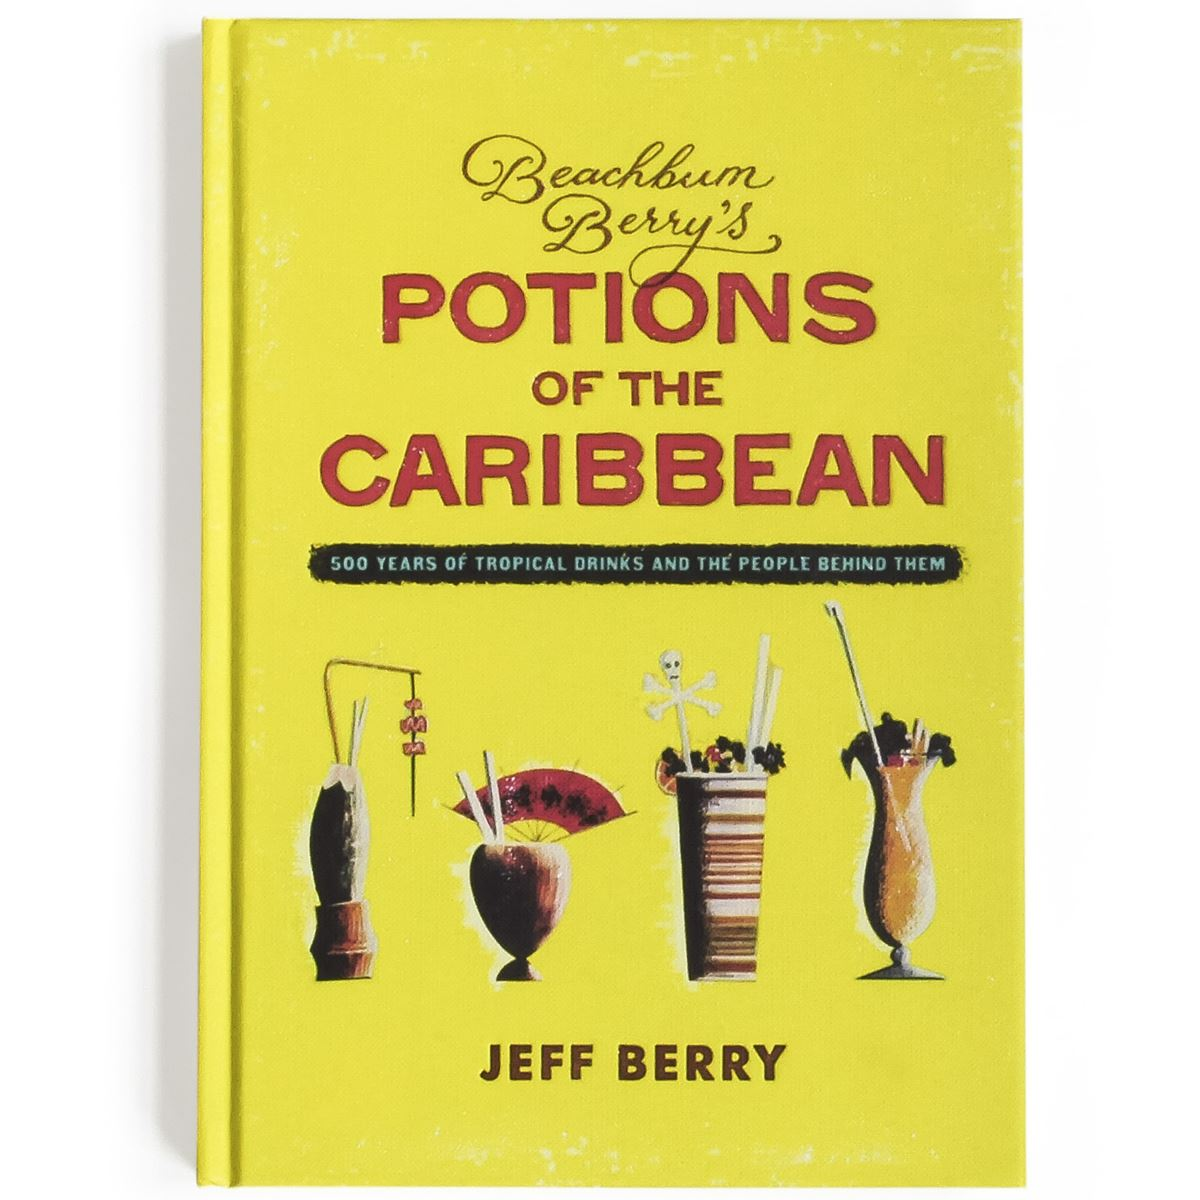 BEACHBUM BERRYS POTIONS OF THE CARIBBEAN